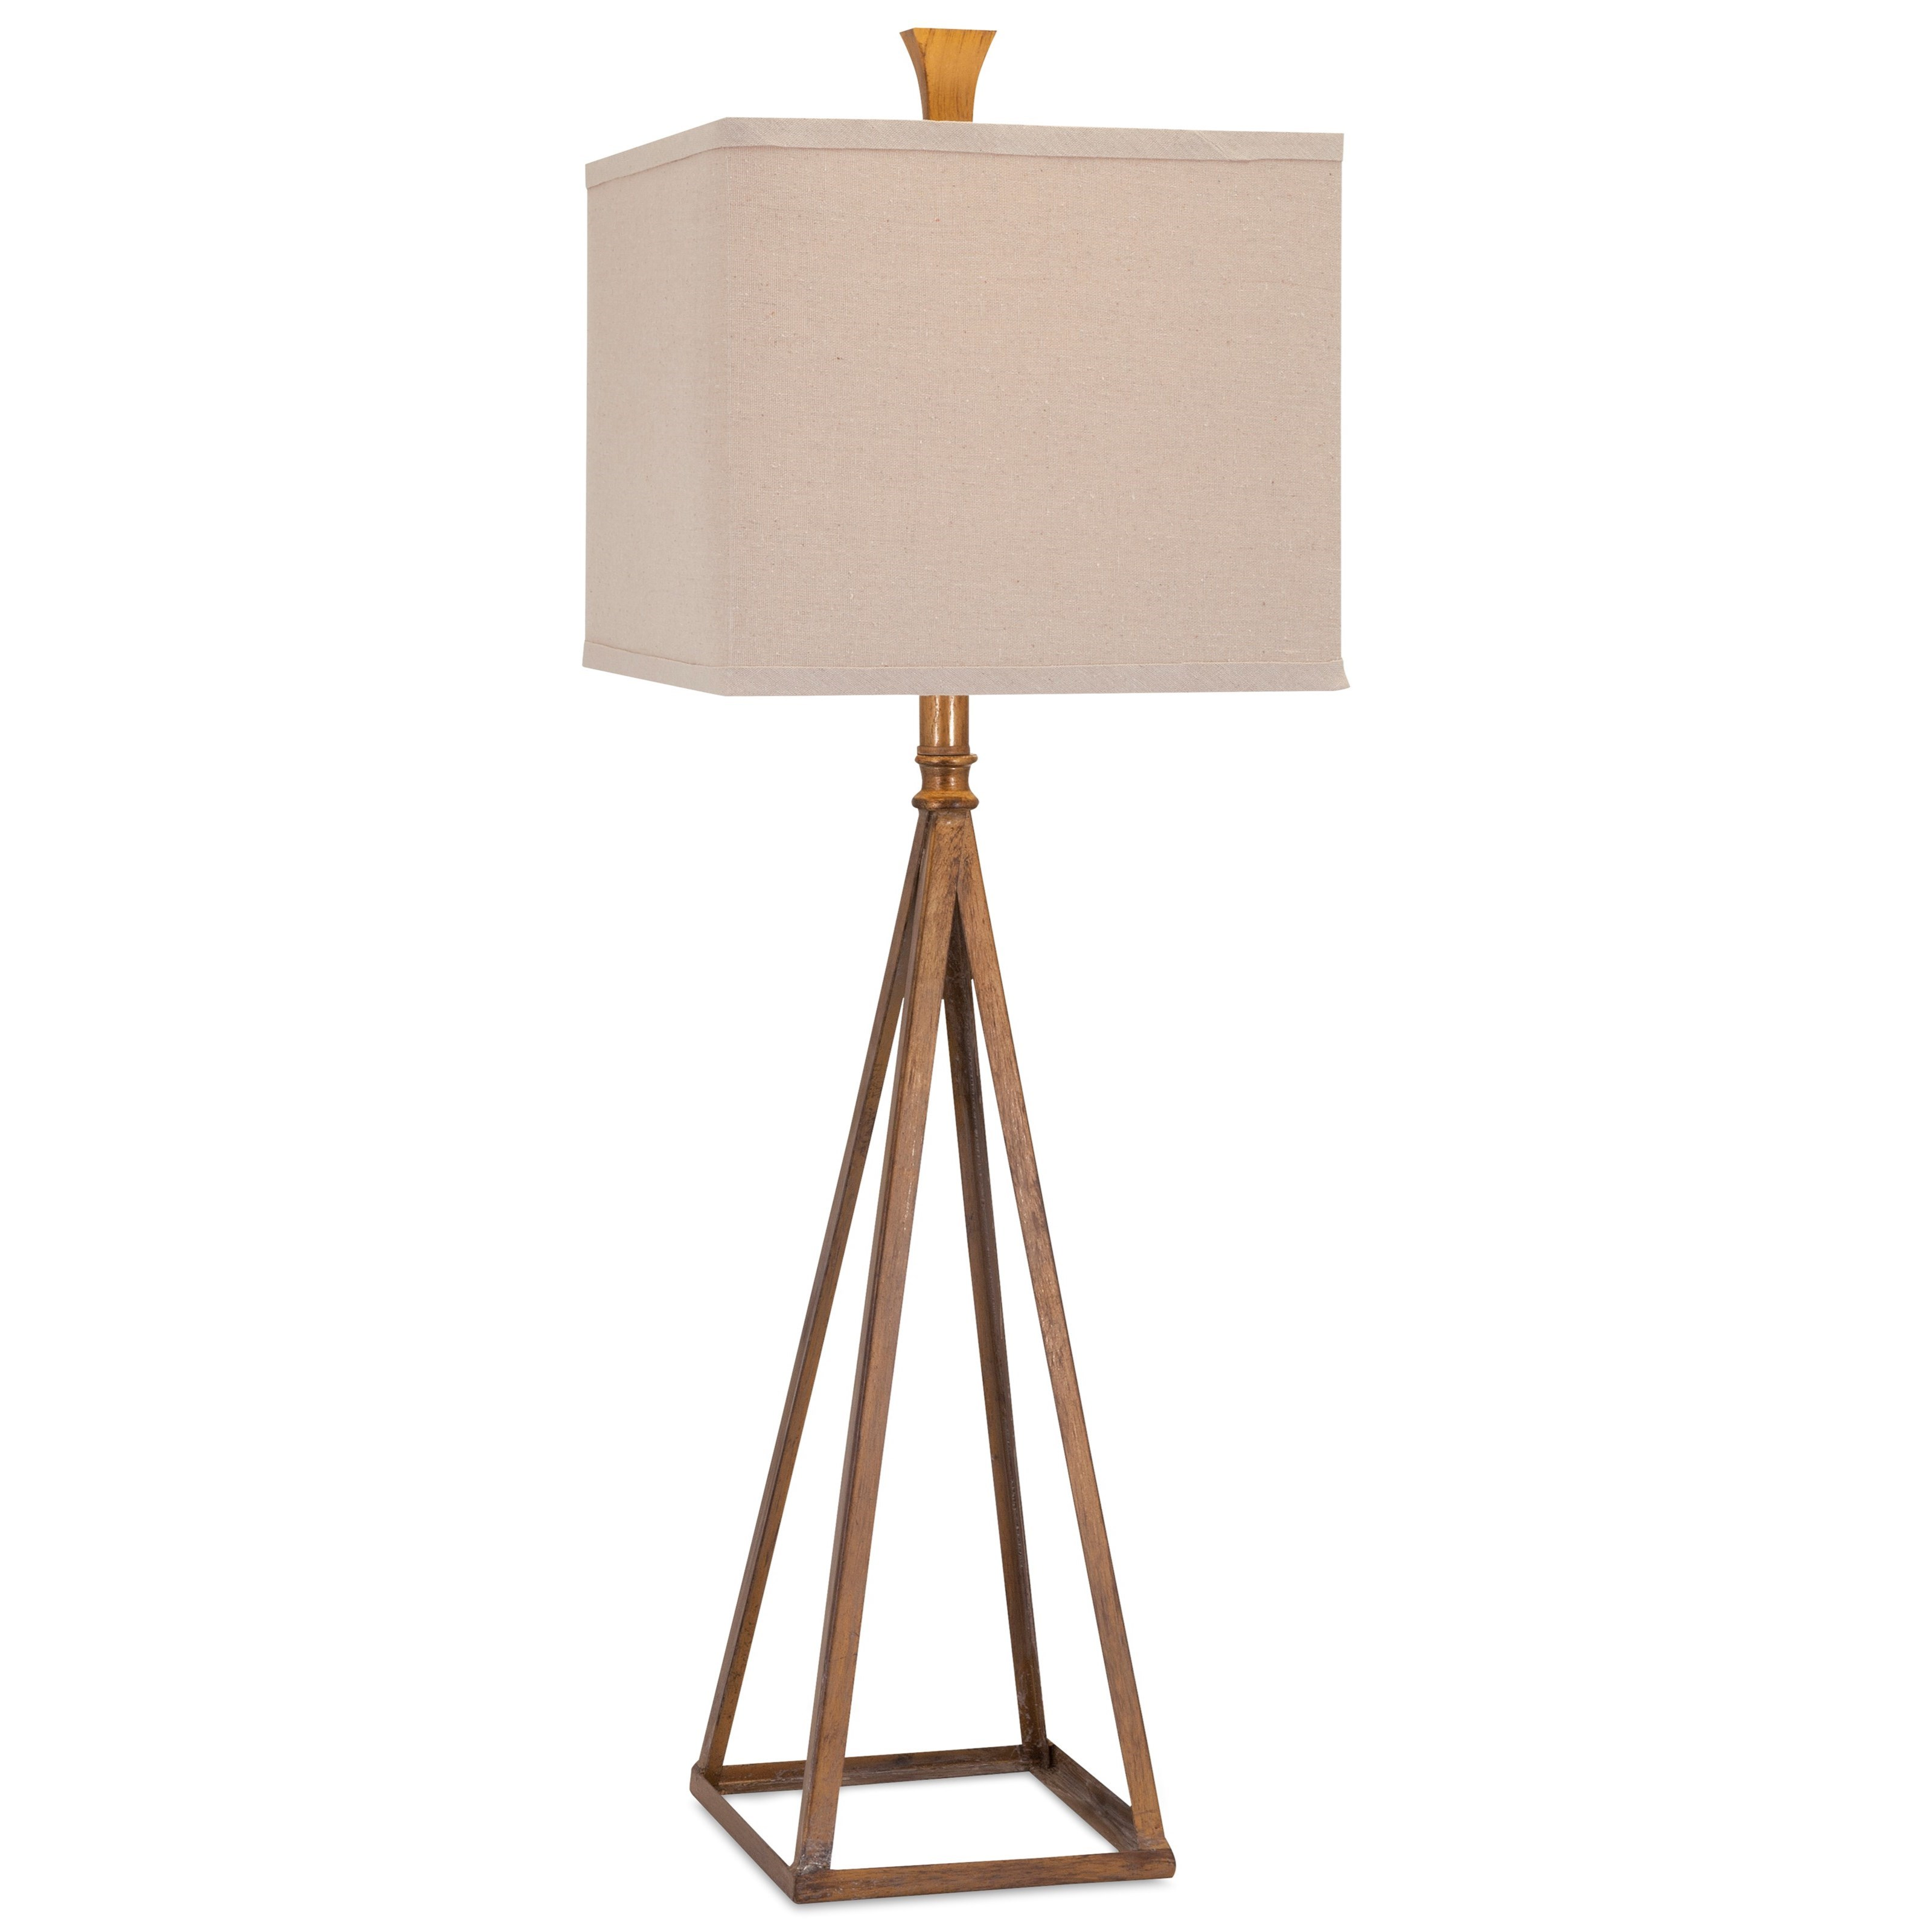 Becky Fletcher Austin Table Lamp by IMAX Worldwide Home at Alison Craig Home Furnishings